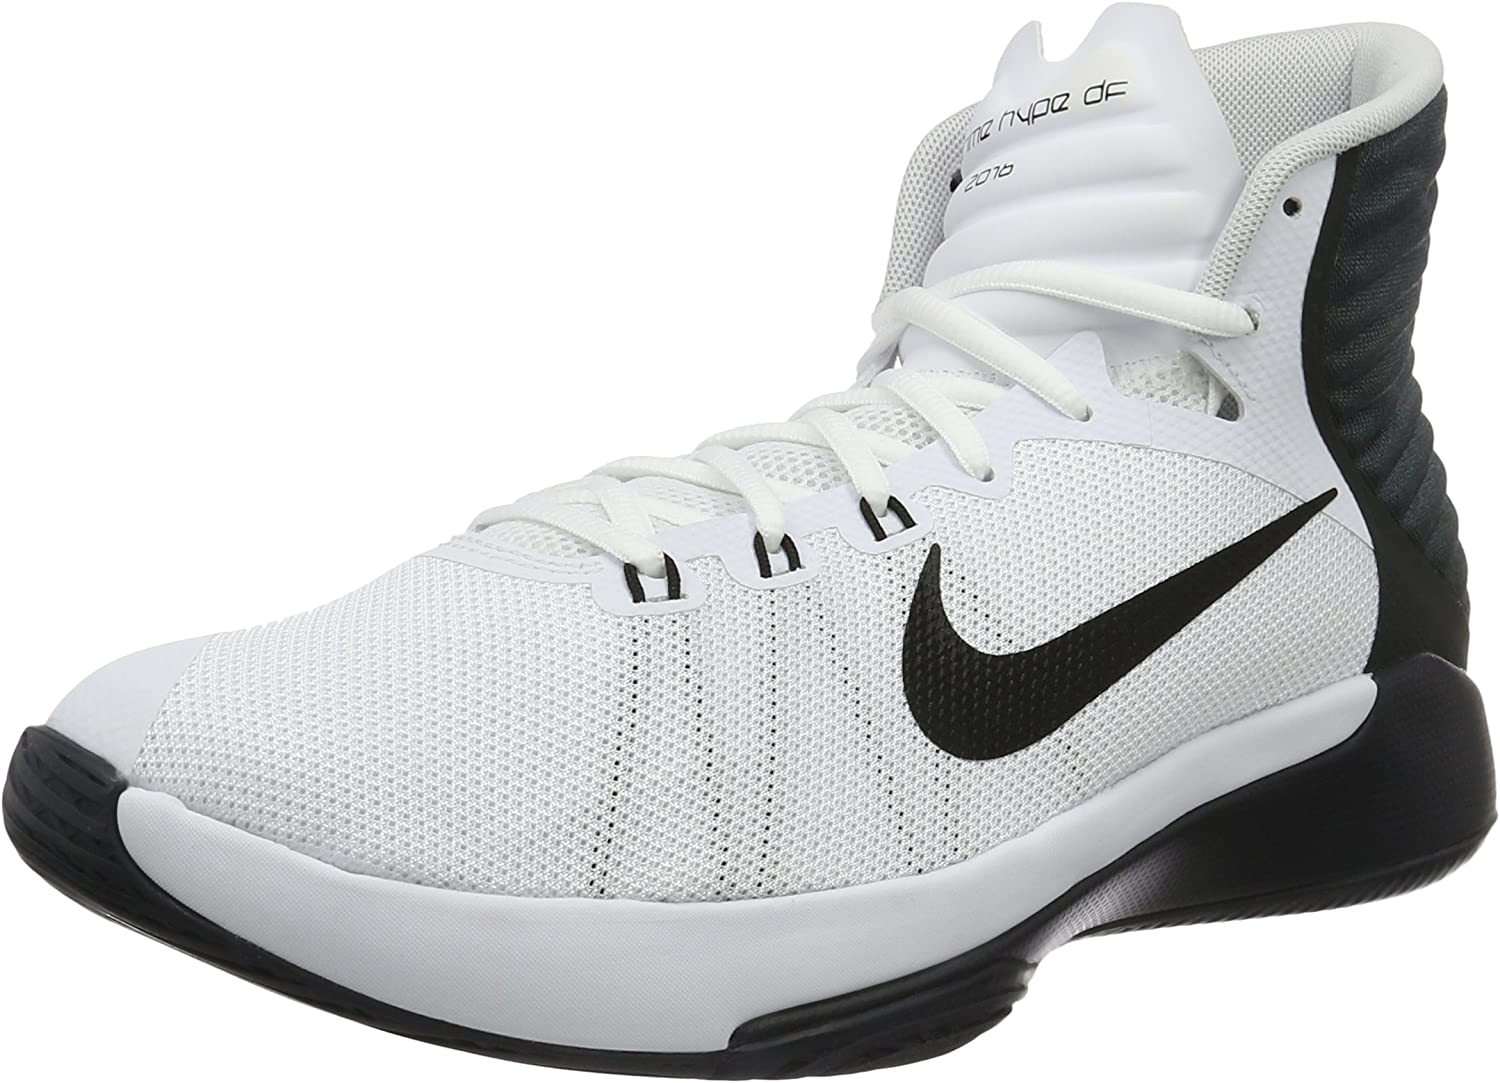 NIKE Mens Prime Hype DF 2016 Basketball Shoes